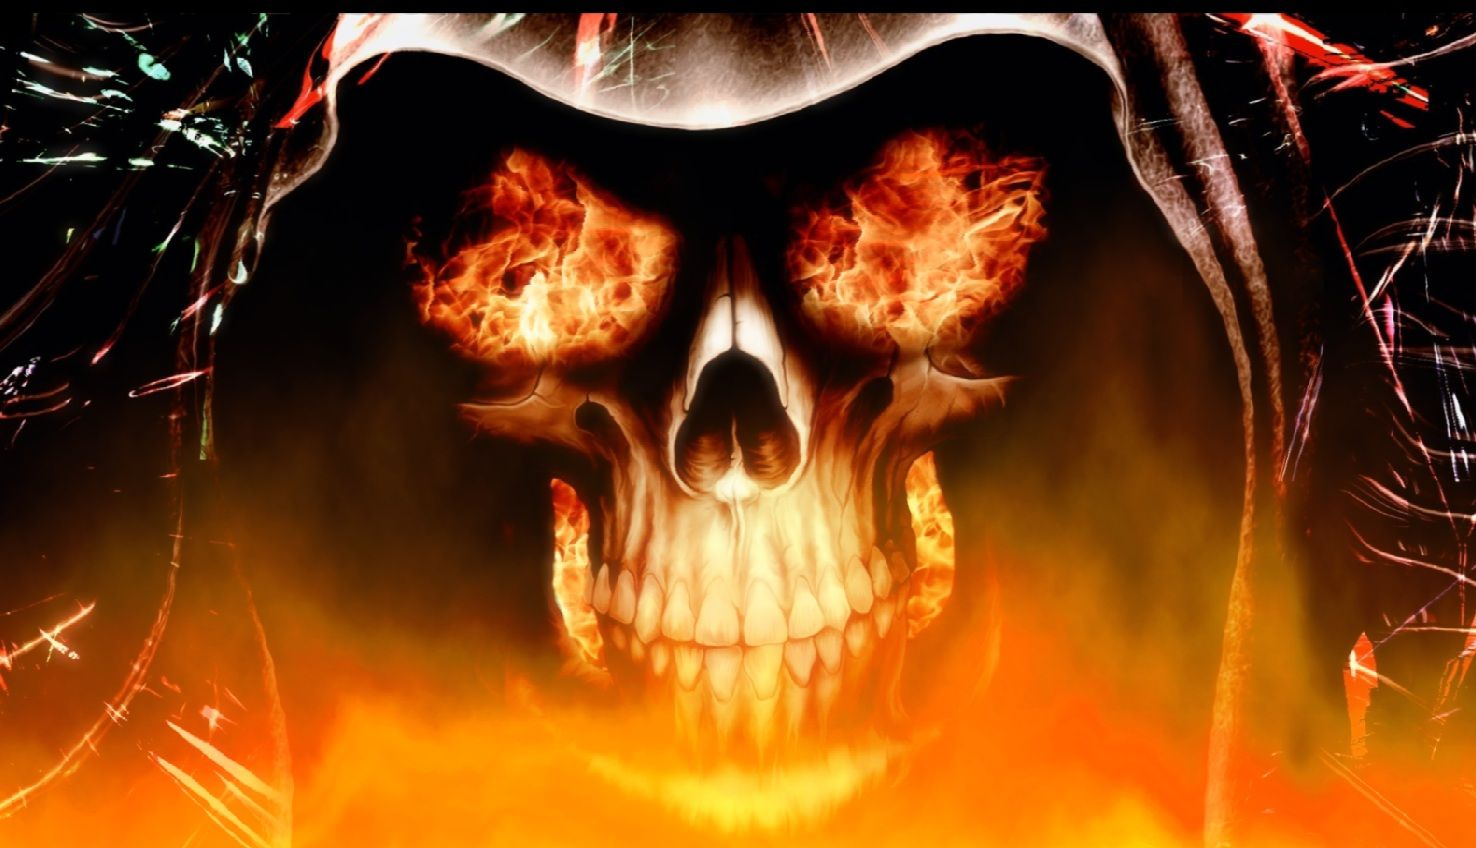 Download Fire Skull Animated Wallpaper | DesktopAnimated.com | Skull  wallpaper, Skull fire, Skull pictures